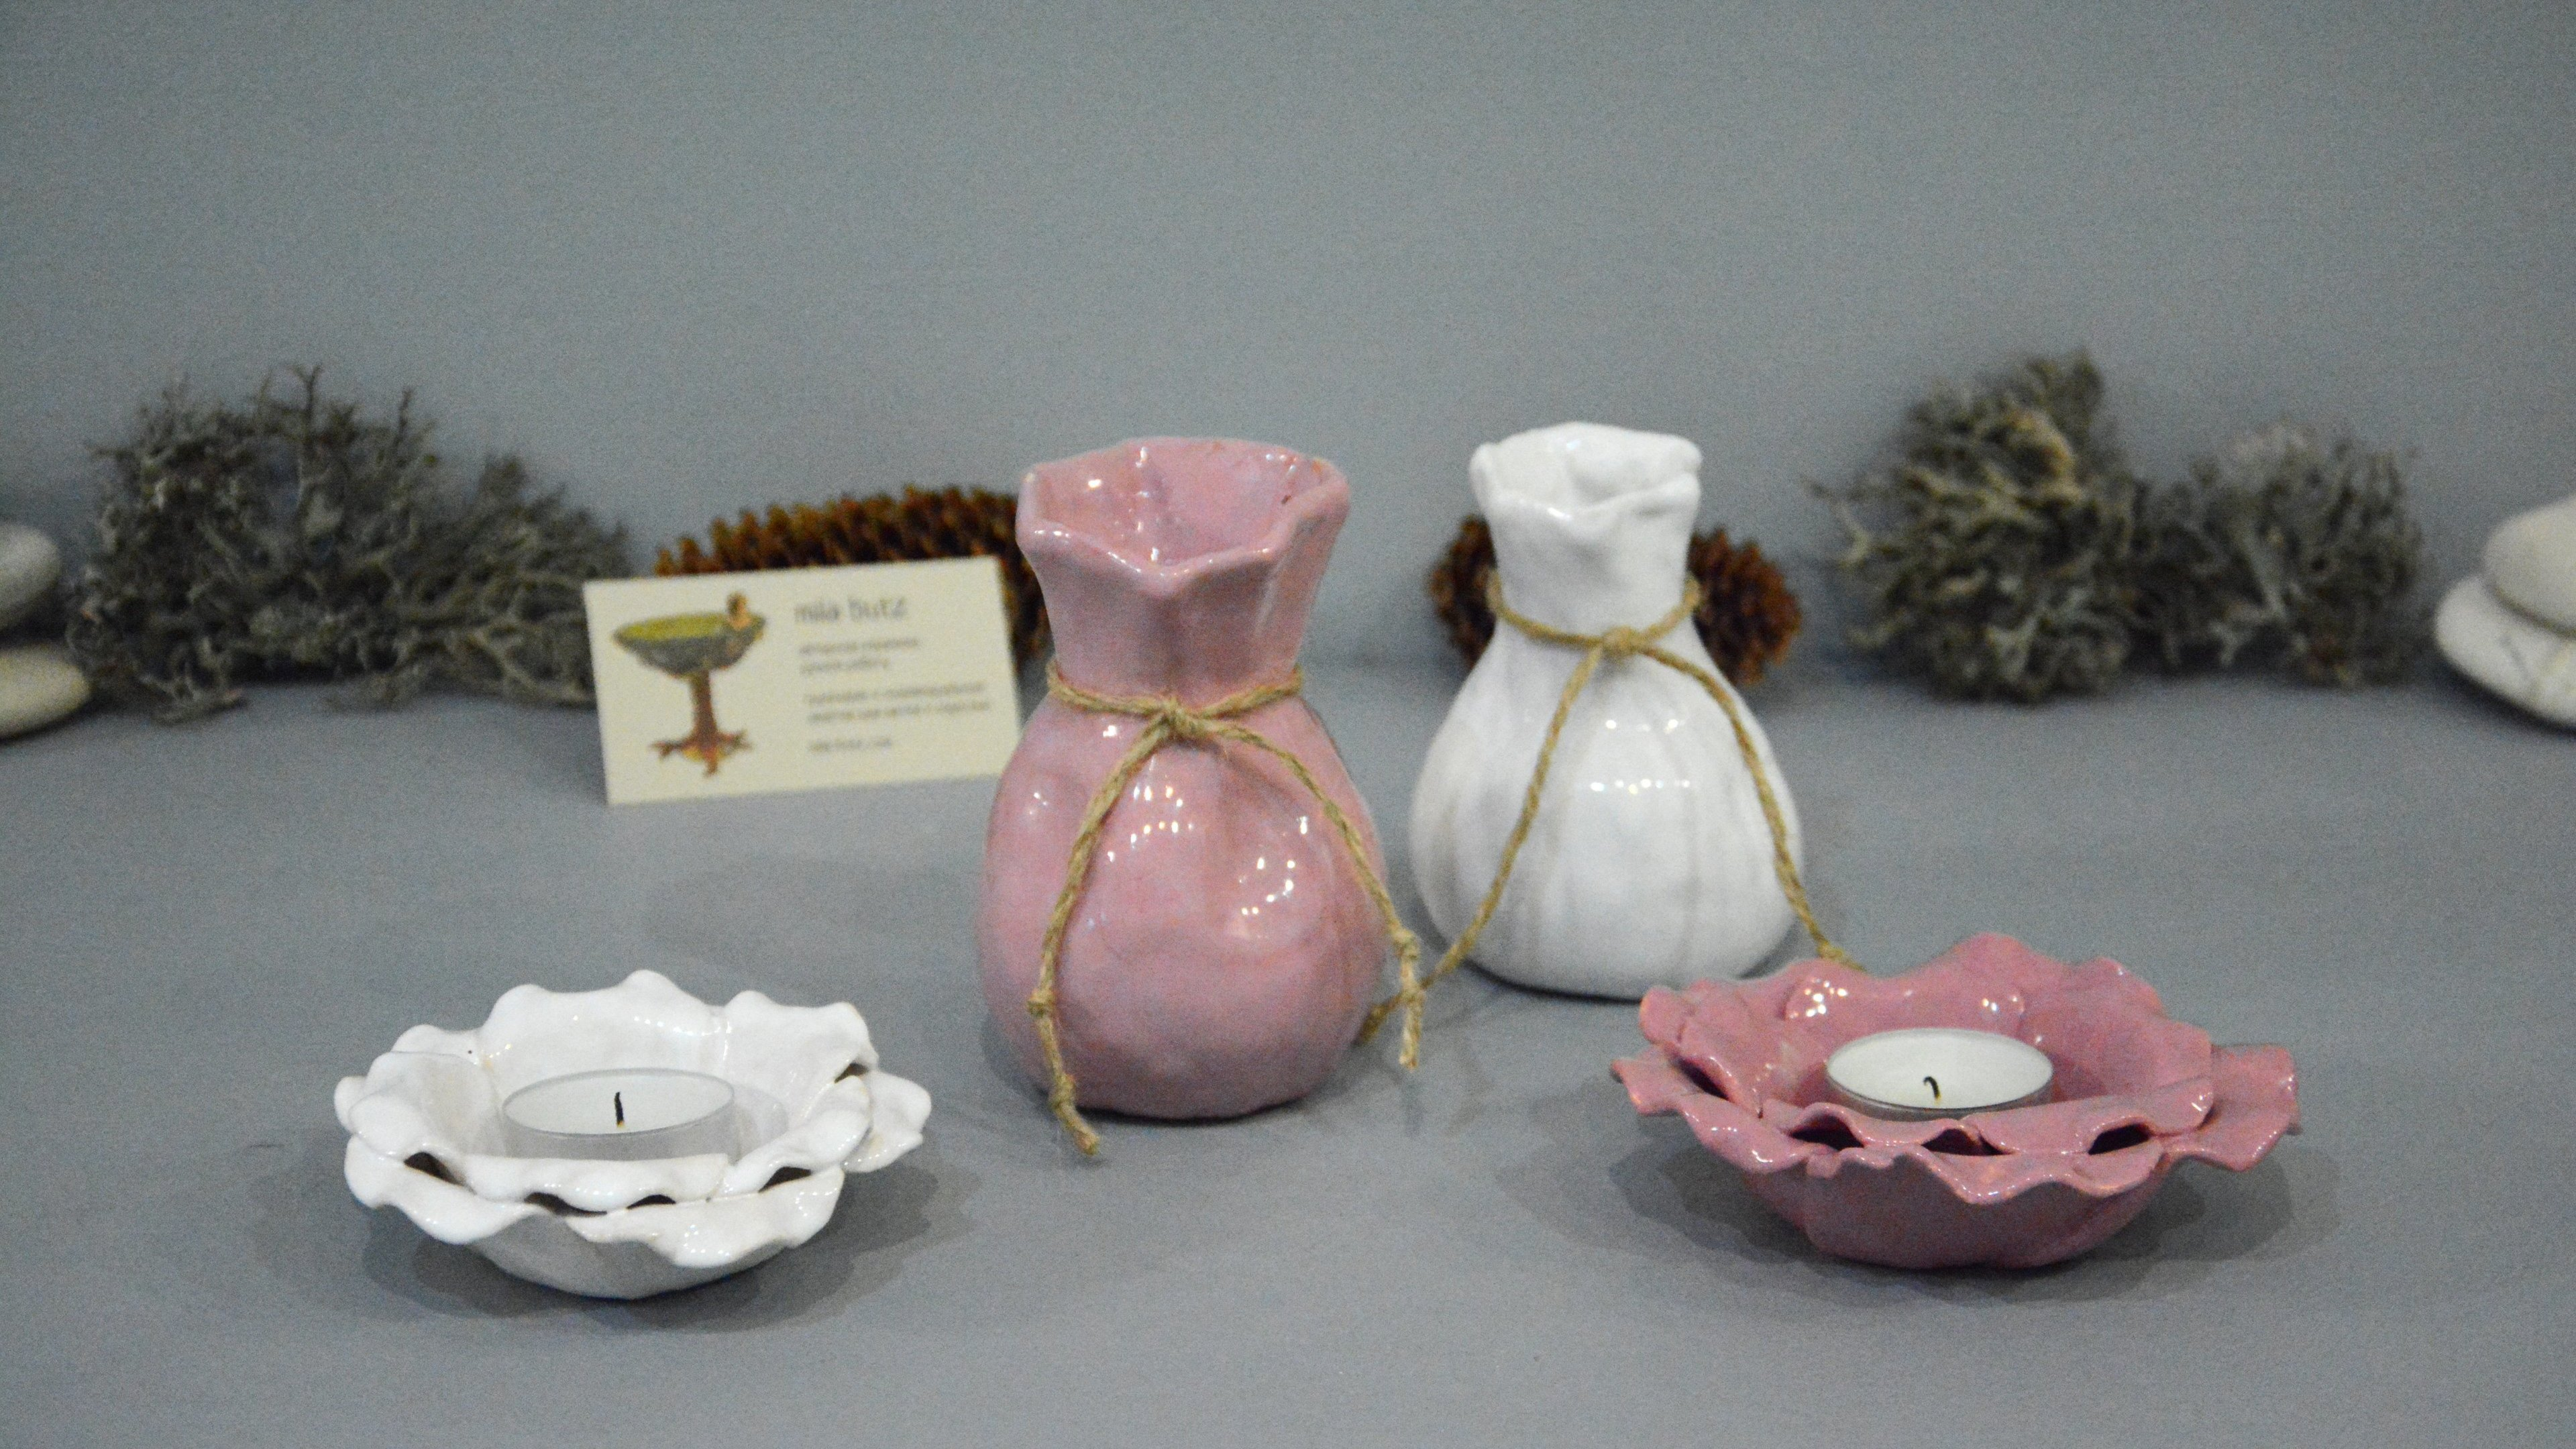 Ceramic small vase candlestick «Pink Bagful», height - 11 cm, photo 6 of 6, format 16x9. 1296-3840-2160.